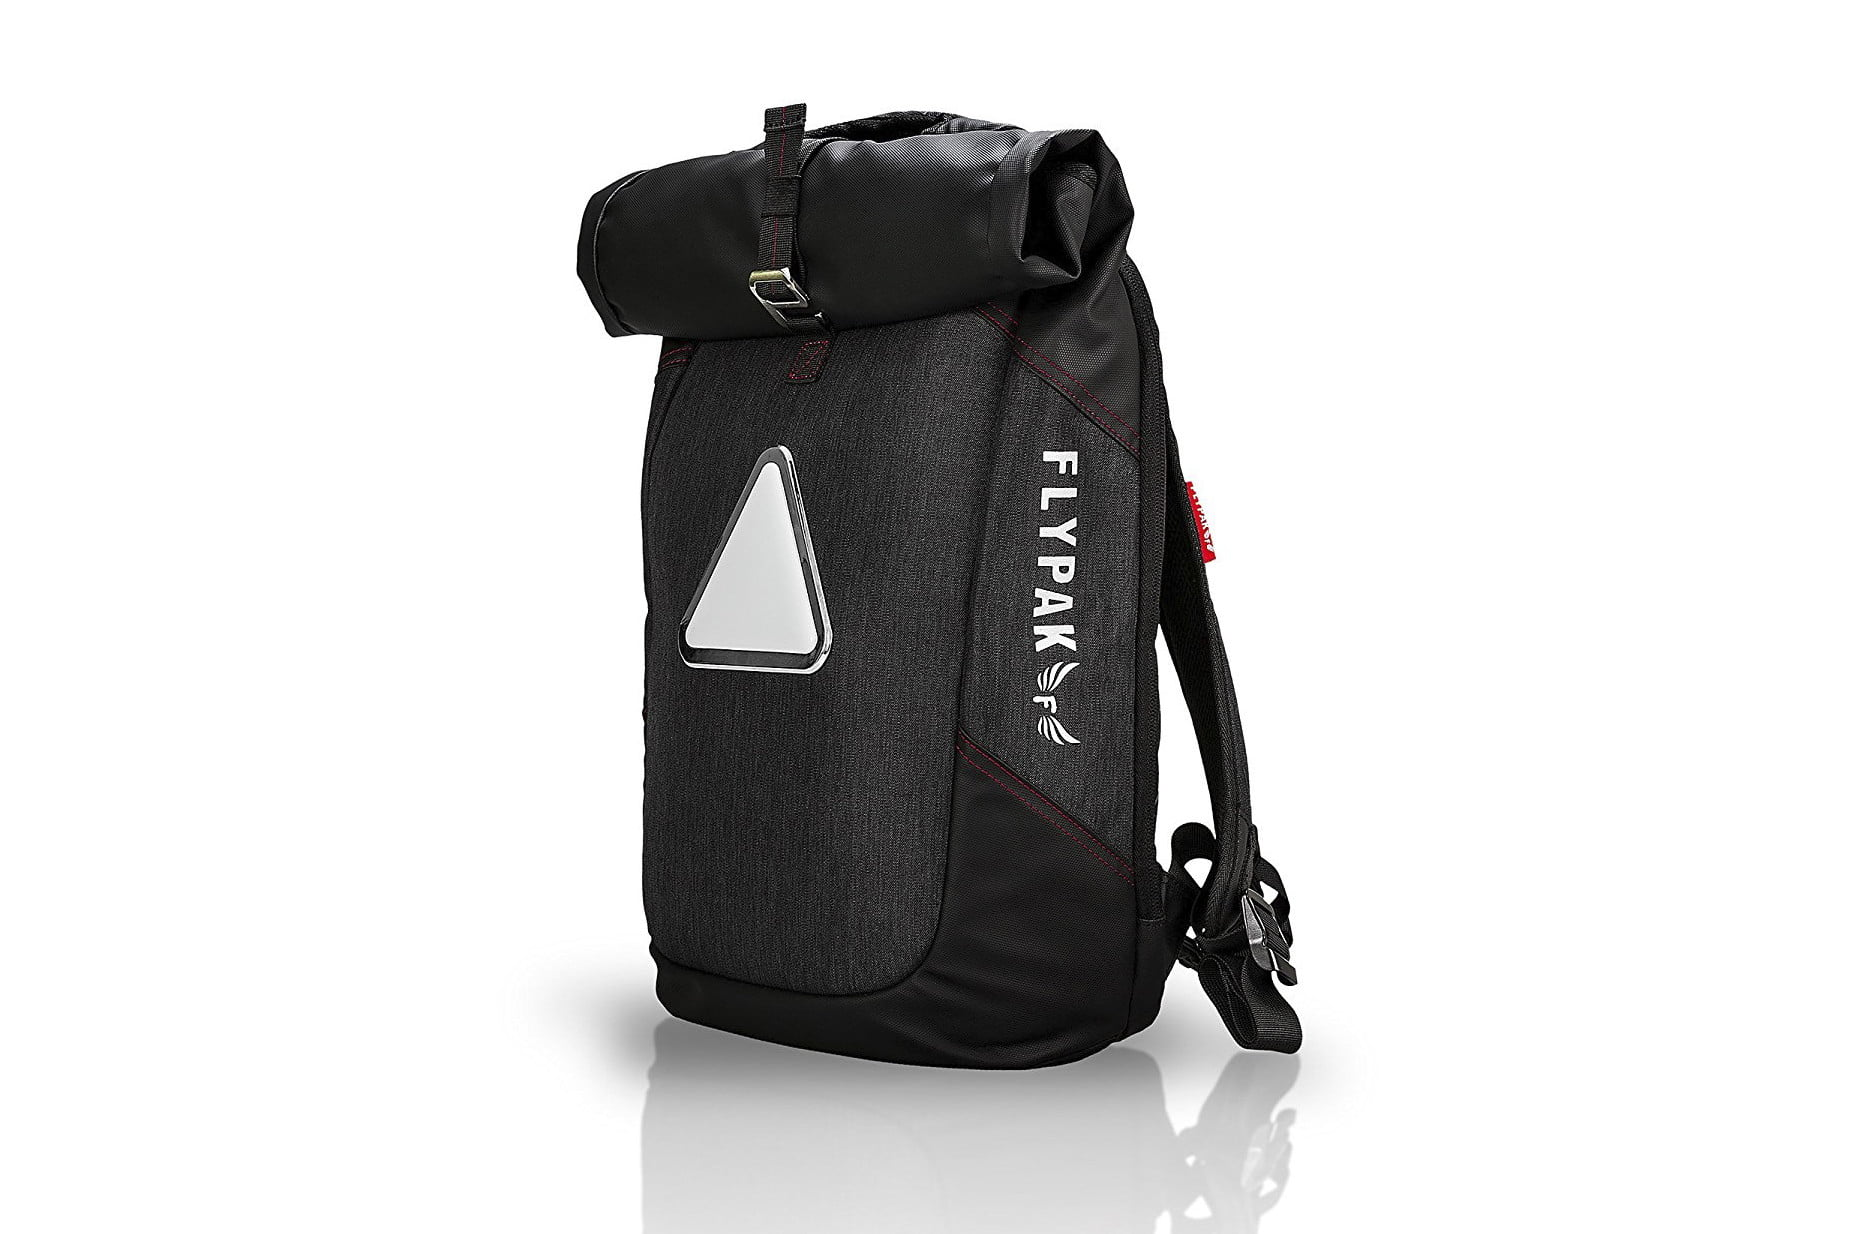 73503029f6a7 Not only does this innovative backpack have an integrated USB port to  charge your electronics